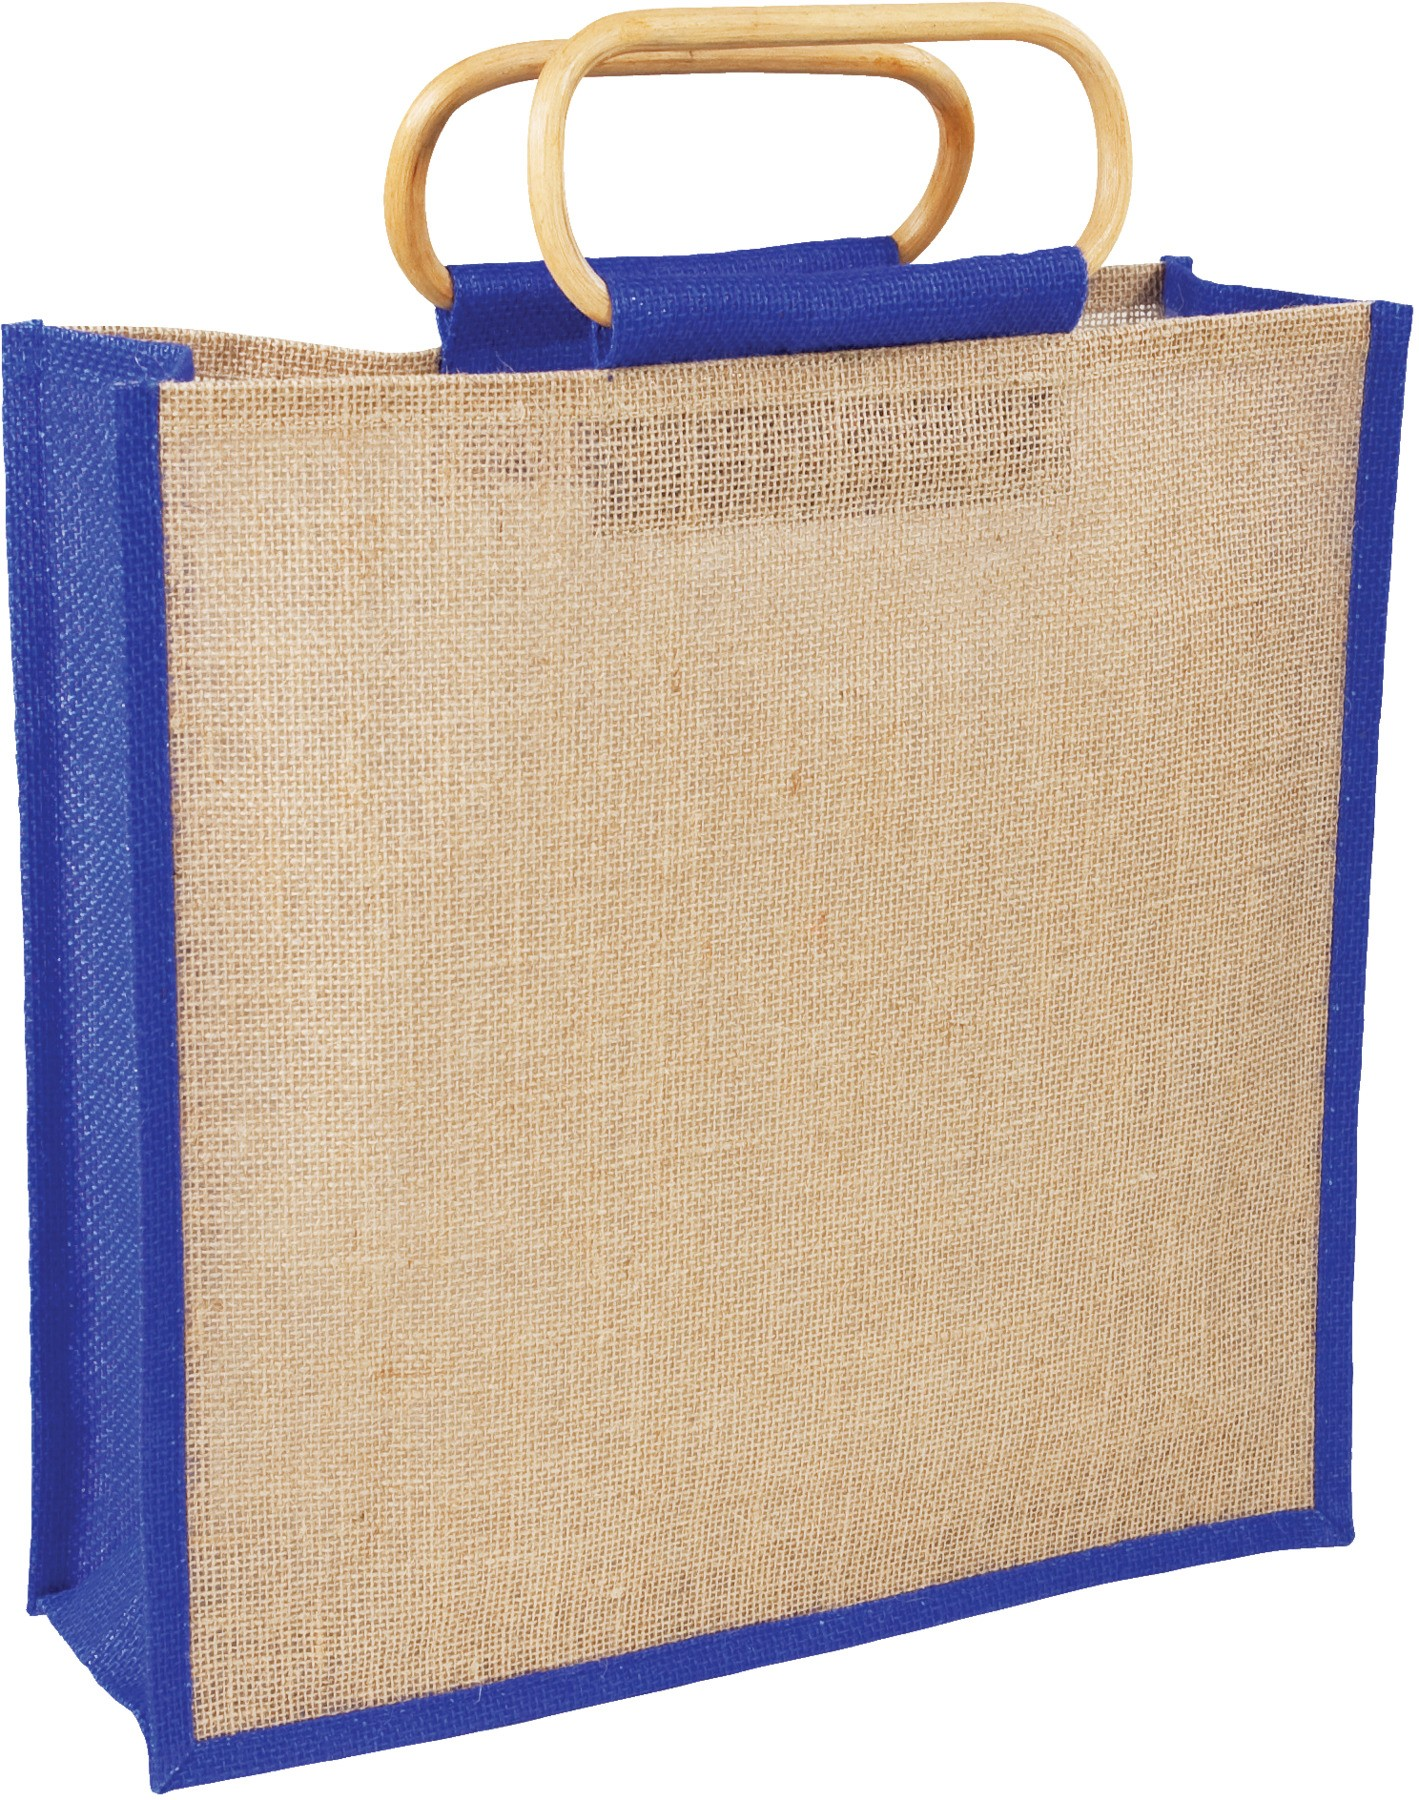 c1eaba26c023 Jute bag with bamboo handle for